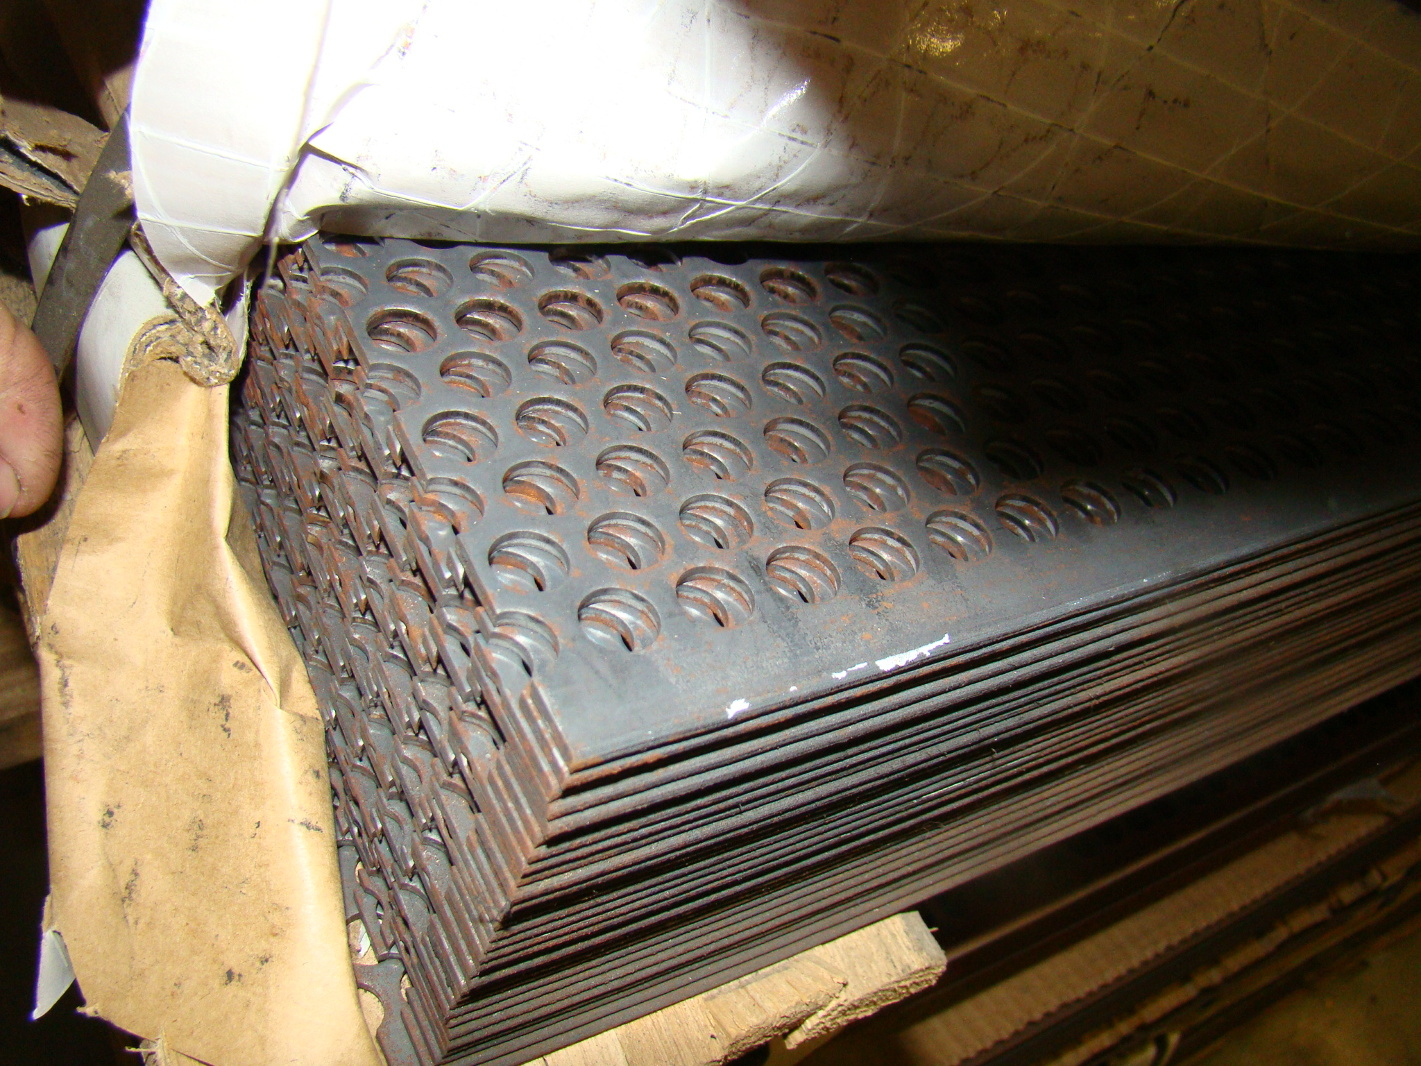 New 4 X 8 X 11g Perforated Steel Sheet 3 8 Holes 30 Pcs